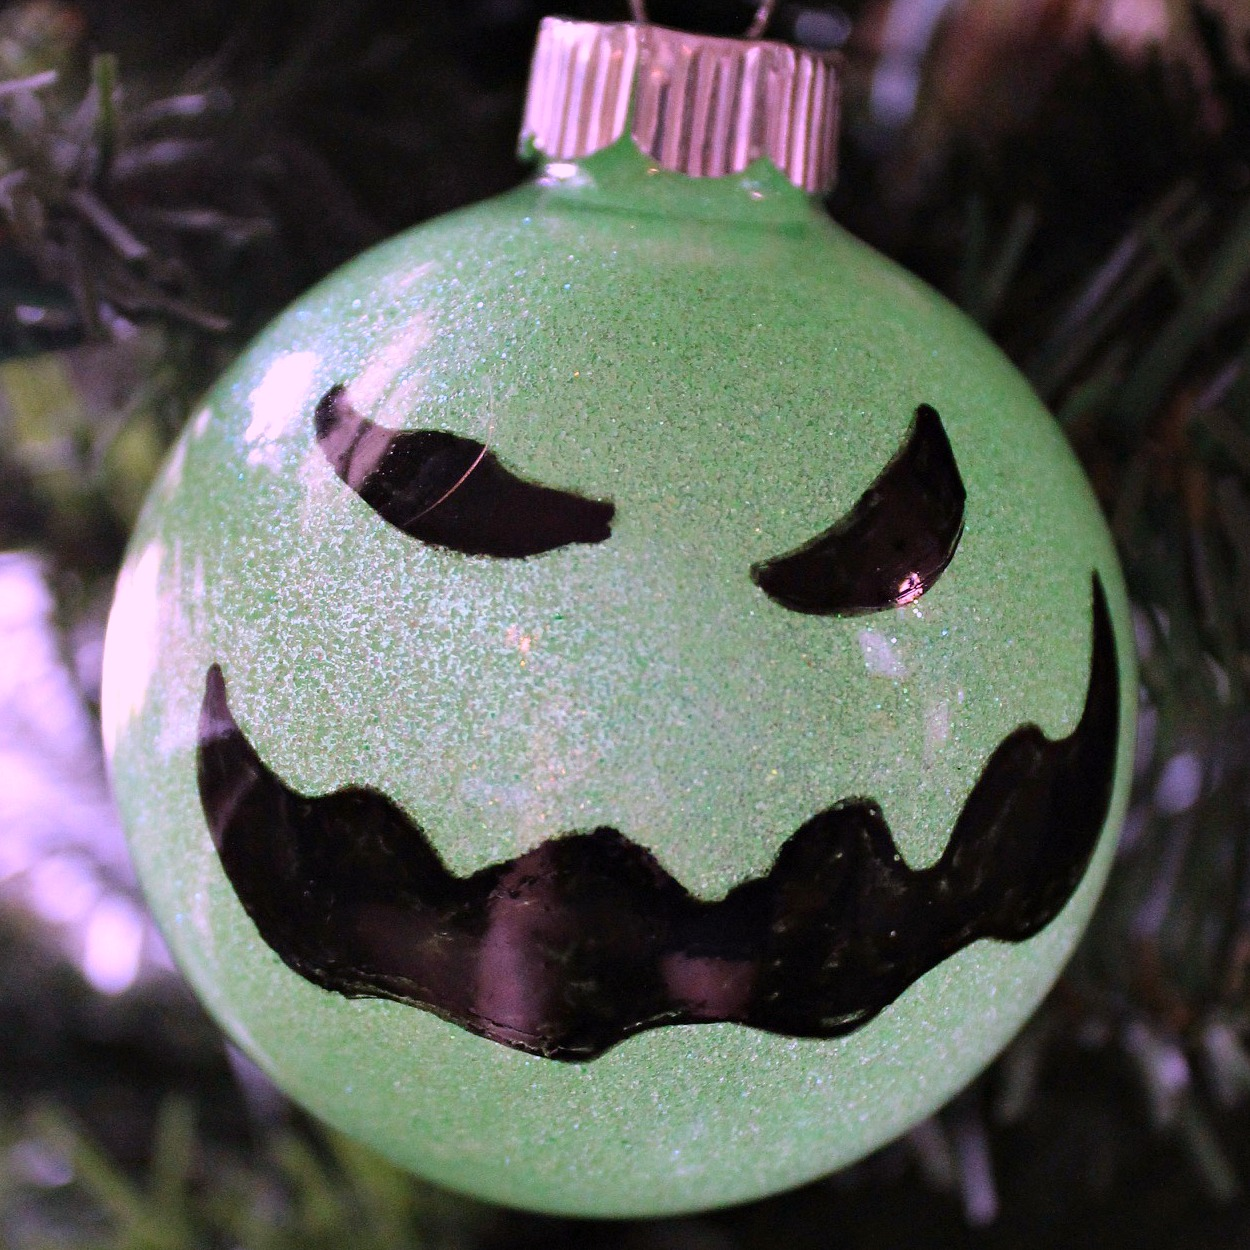 insta homemade oogie boogie tree ornament